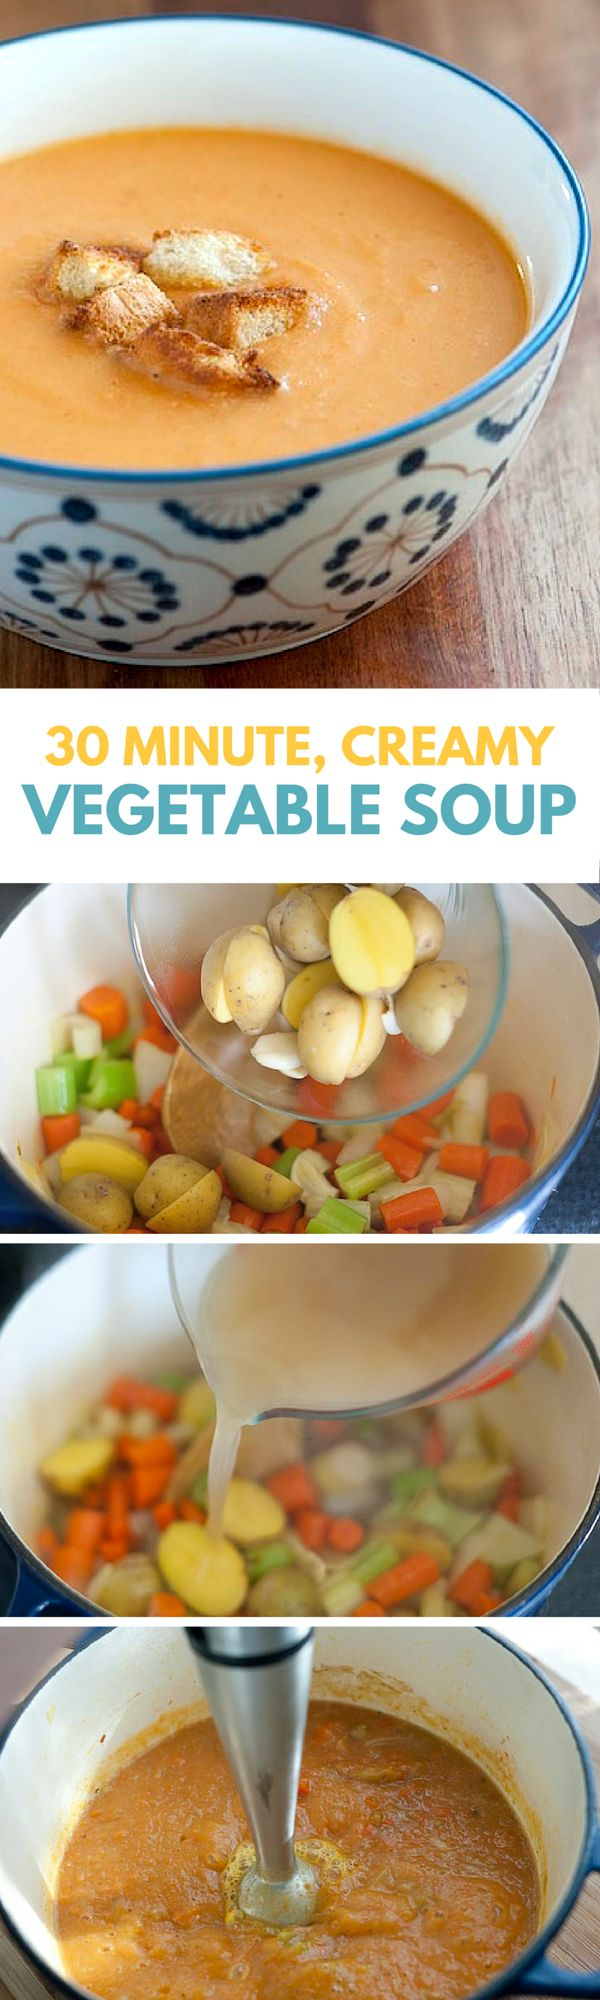 uick and Easy Creamy Vegetable Soup